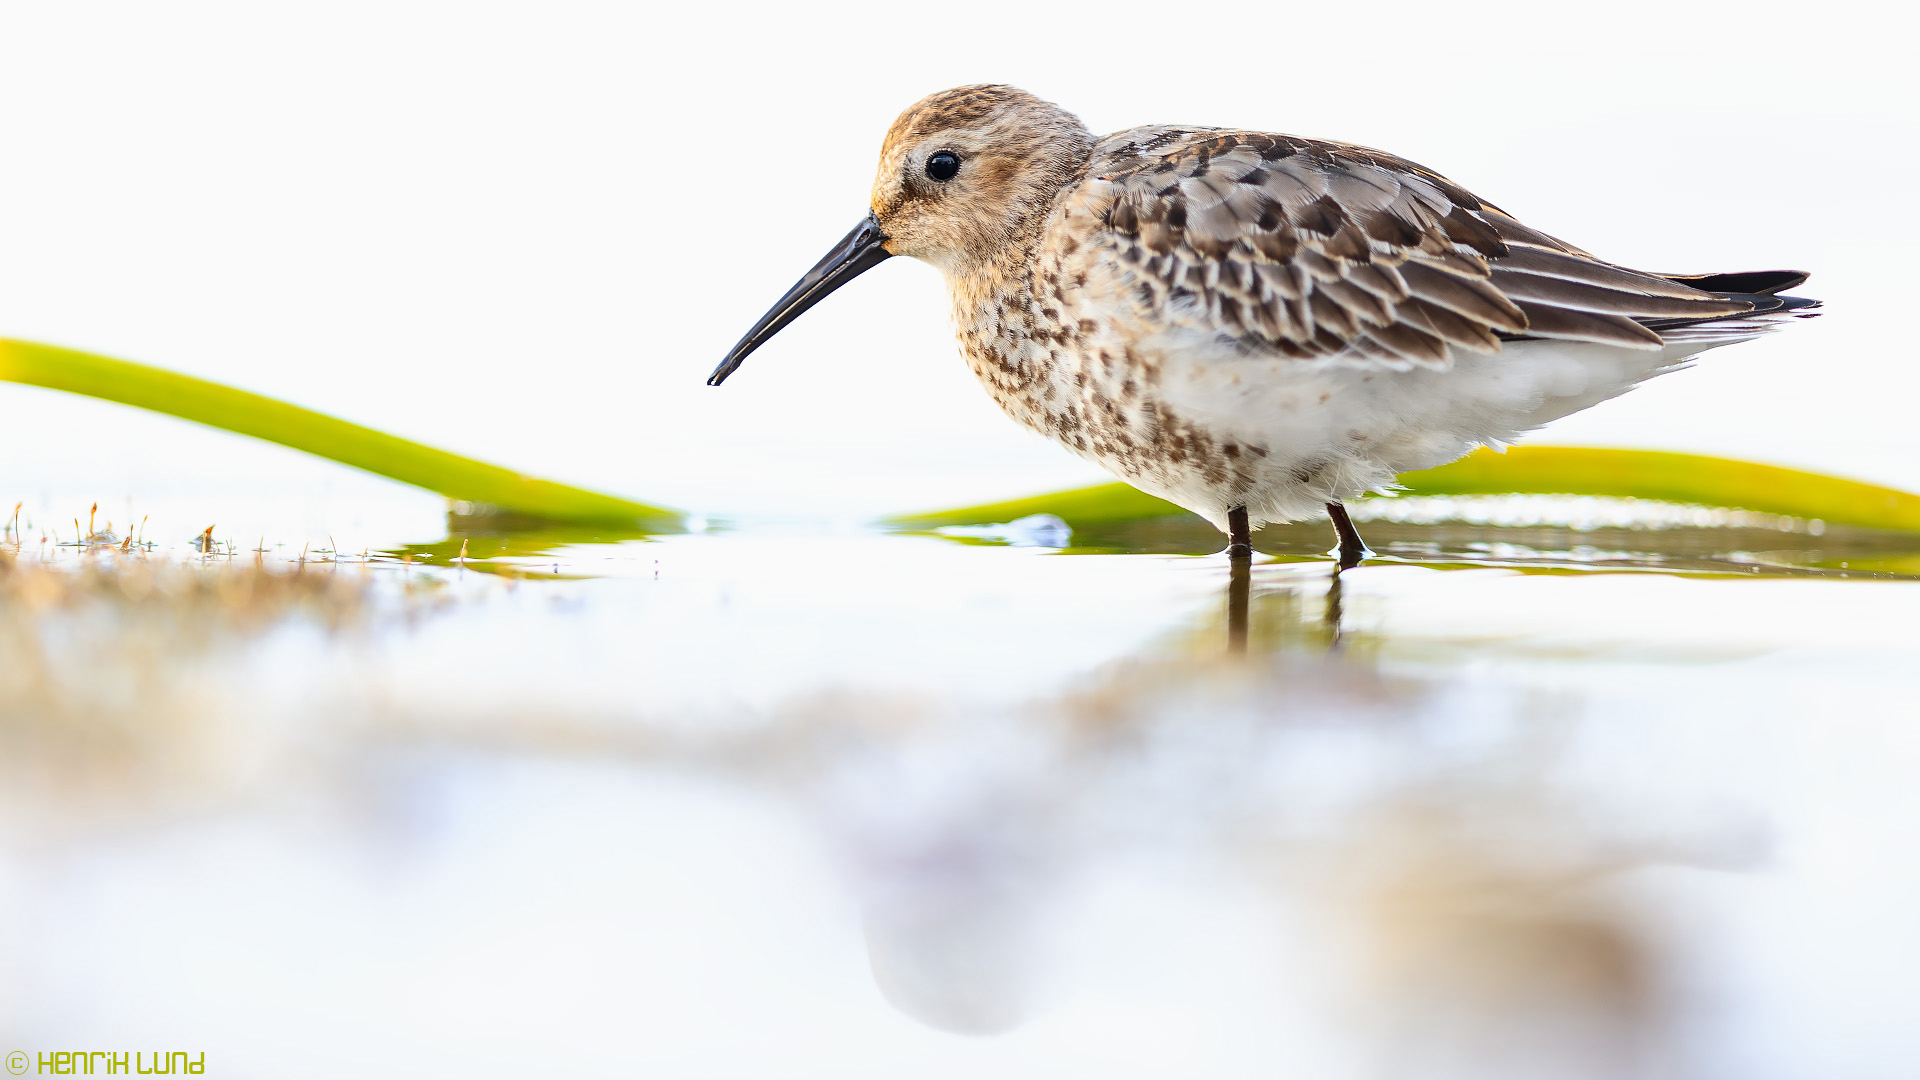 Young dunlin in slightly overexposed background. Lappträsk, Filand. September 2016.